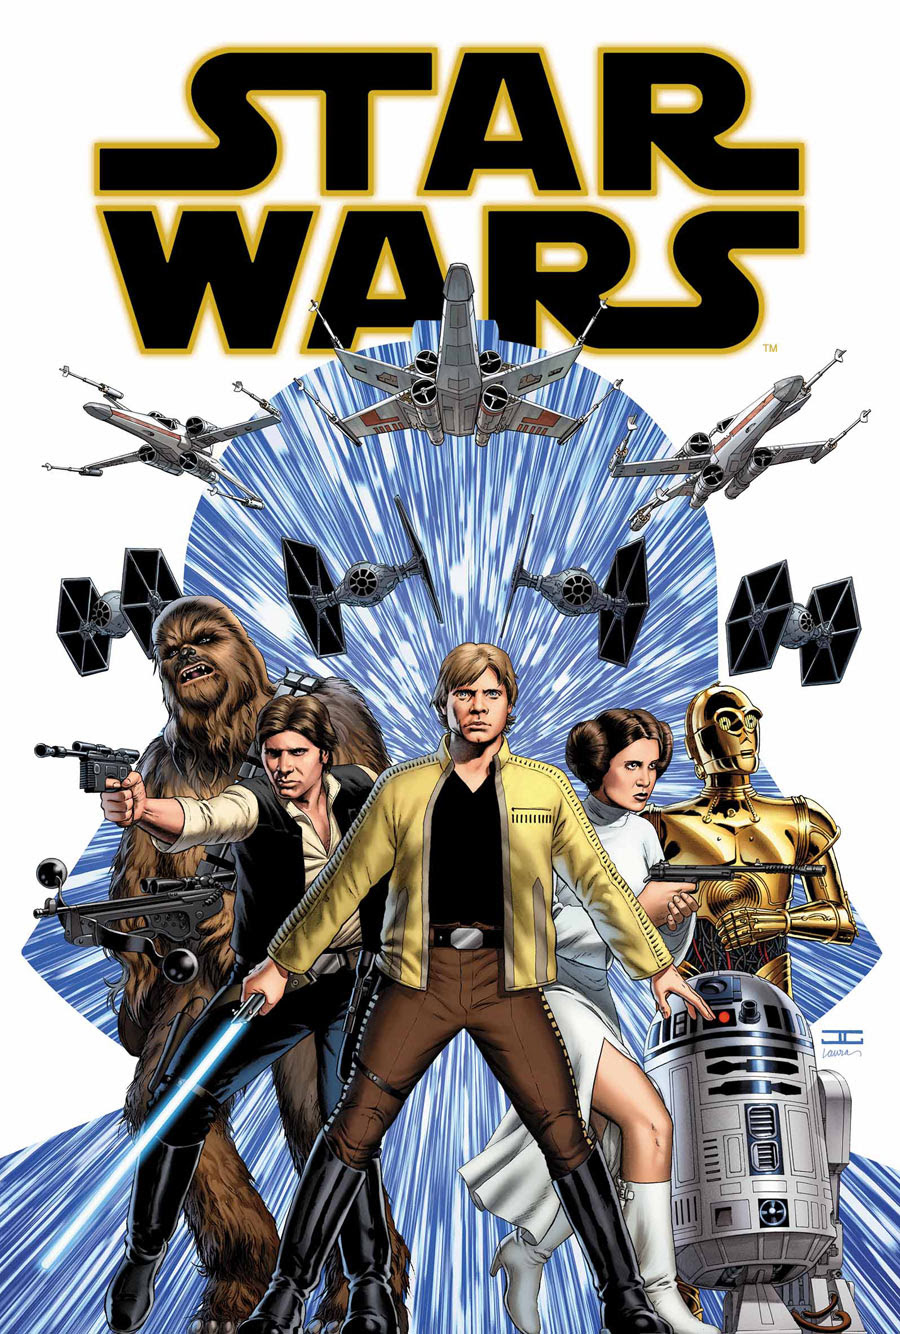 http://vignette1.wikia.nocookie.net/starwars/images/2/2c/Star_Wars_Marvel_2015_John_Cassaday_Special_Edition.jpg/revision/latest?cb=20141021202543